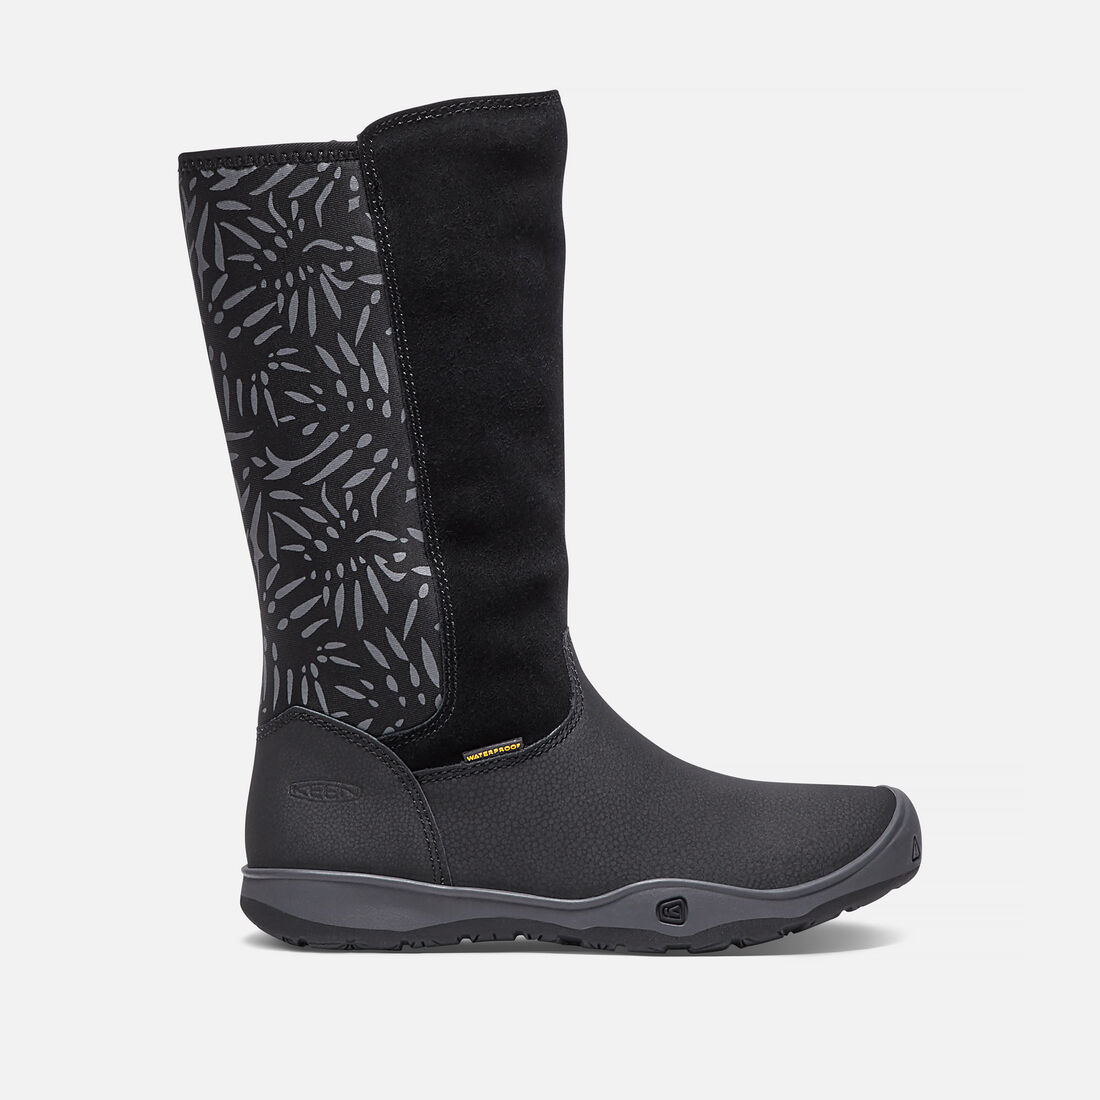 Big Kids' MOXIE TALL Waterproof Boot in Black/Magnet - large view.